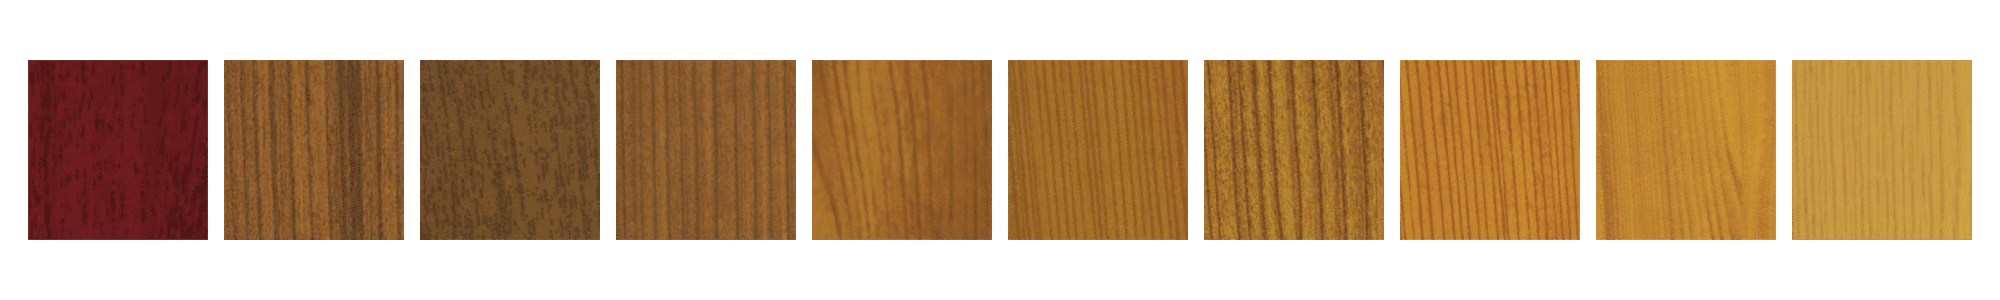 Mirage Retractable Screens wood-grain colors